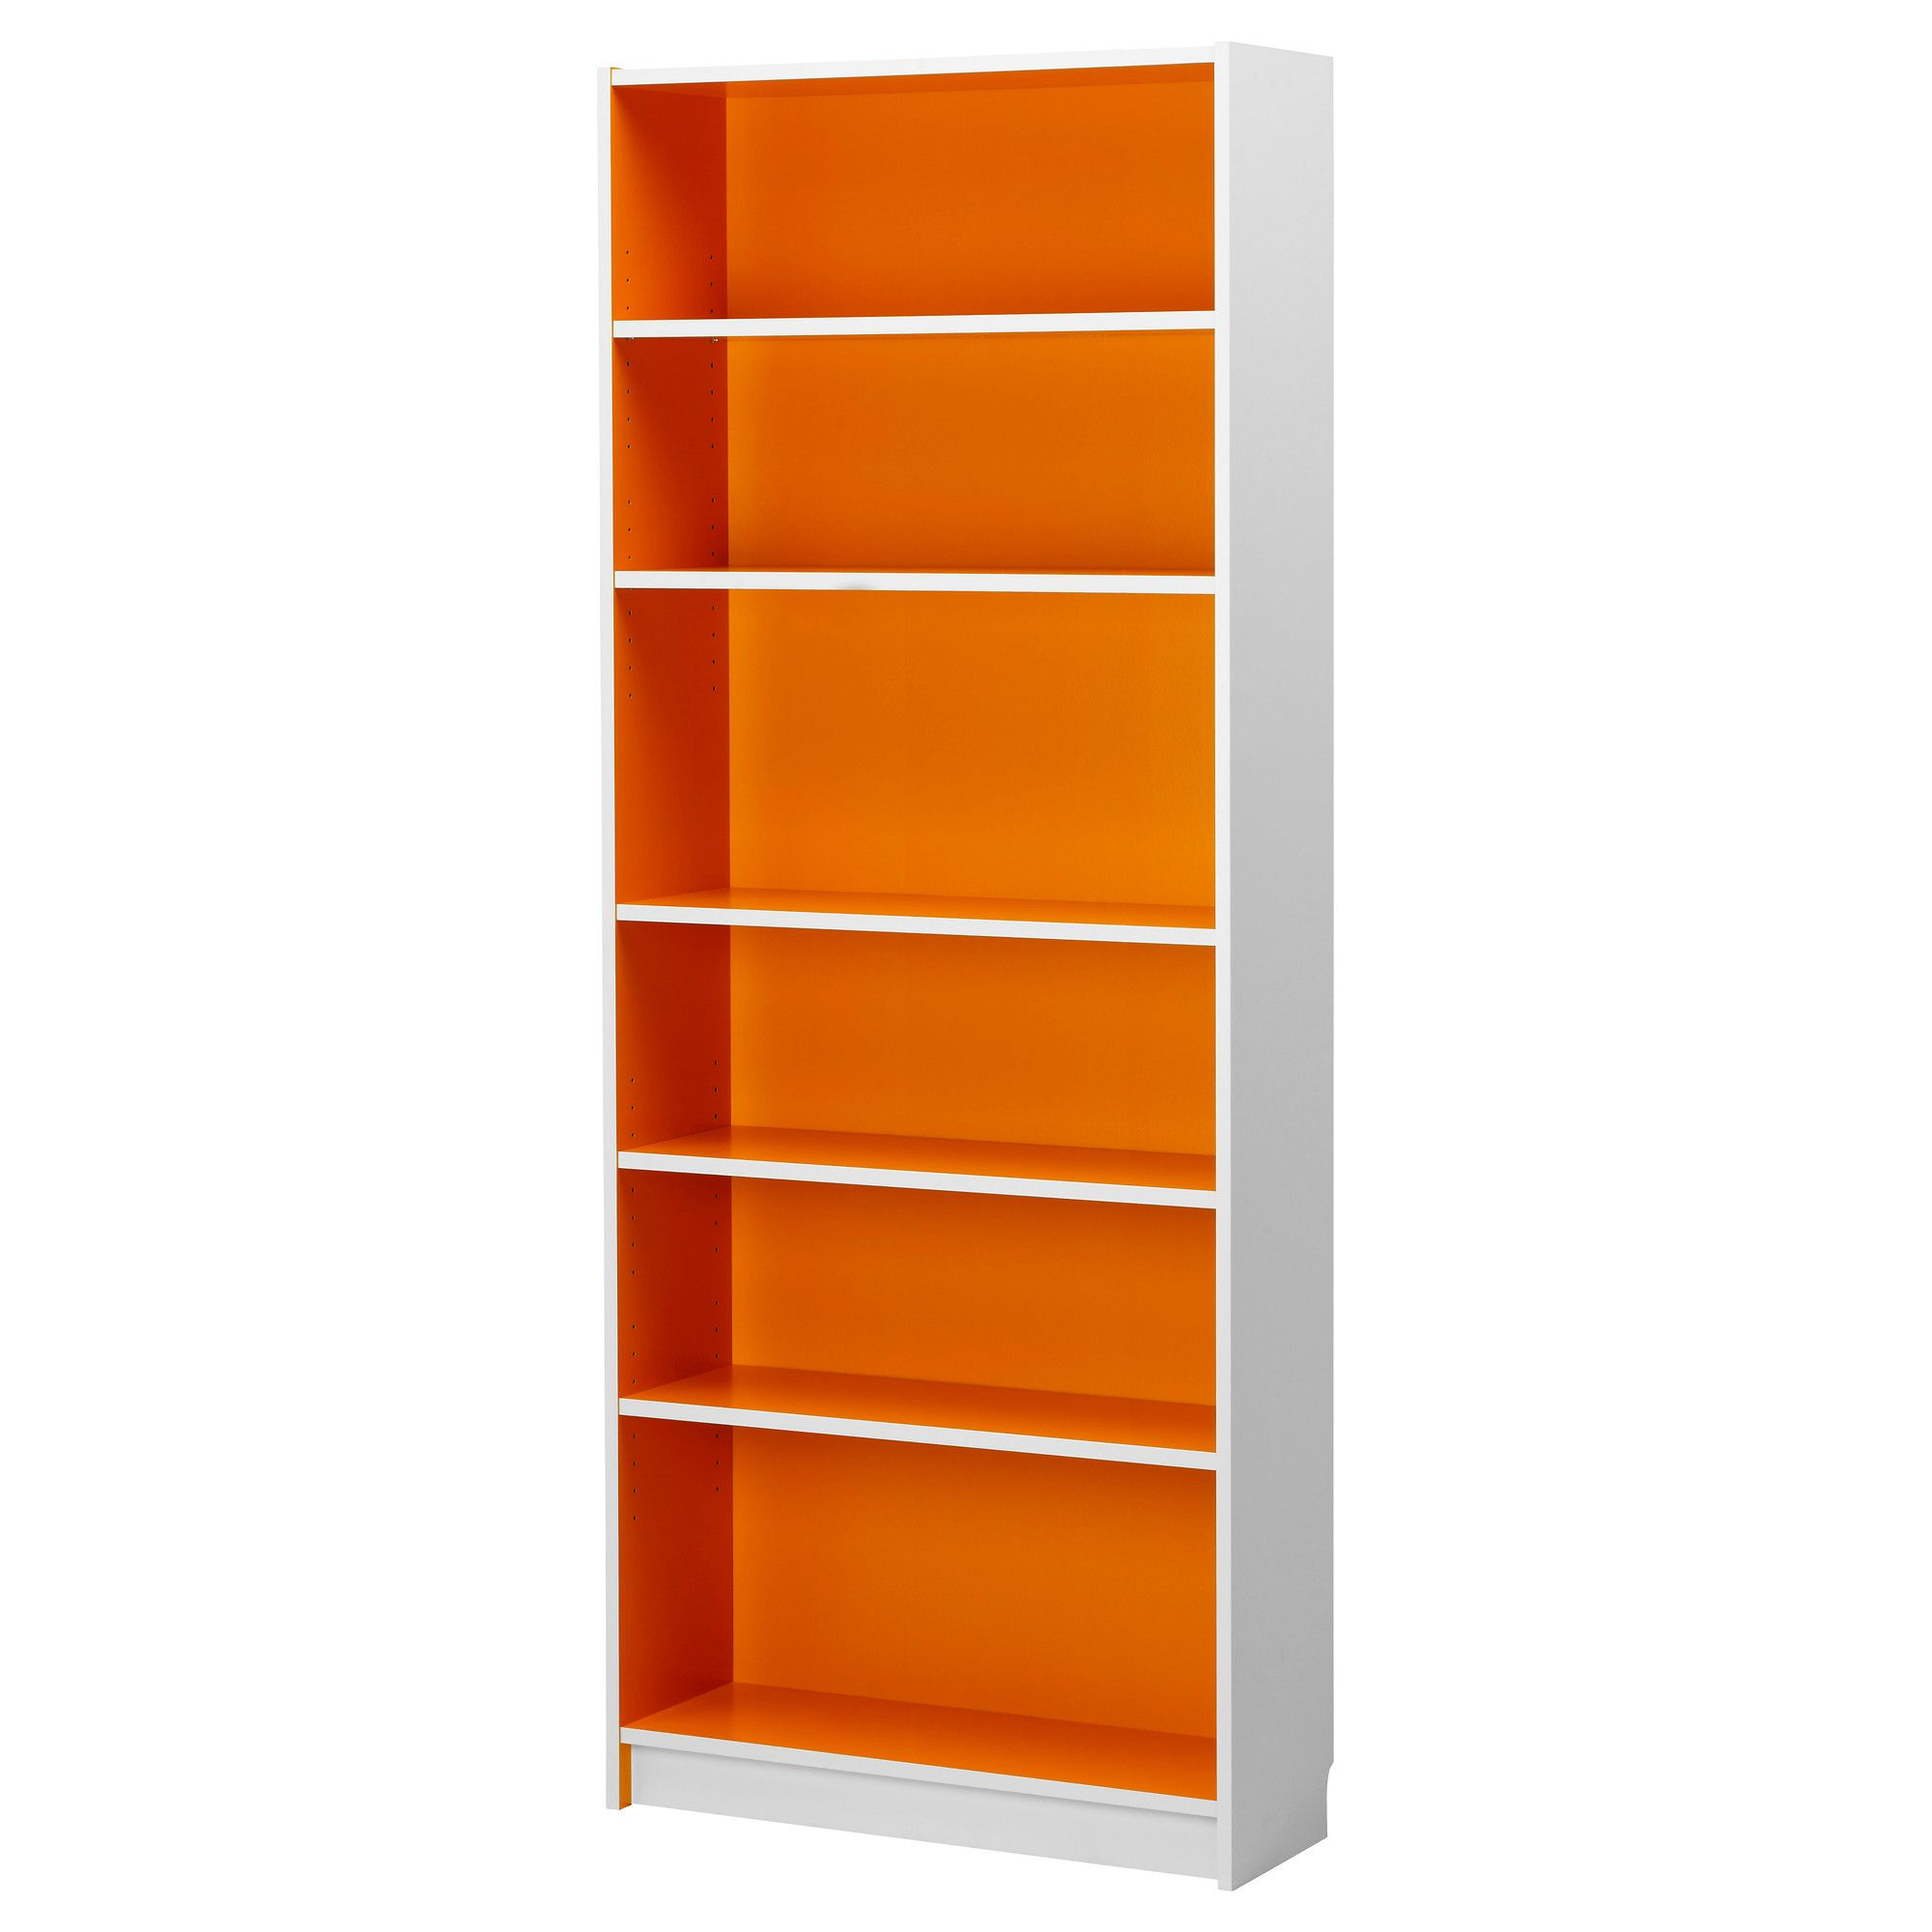 As Room Billy Bookcase Ikea Adjustable Shelves Can Be Arranged